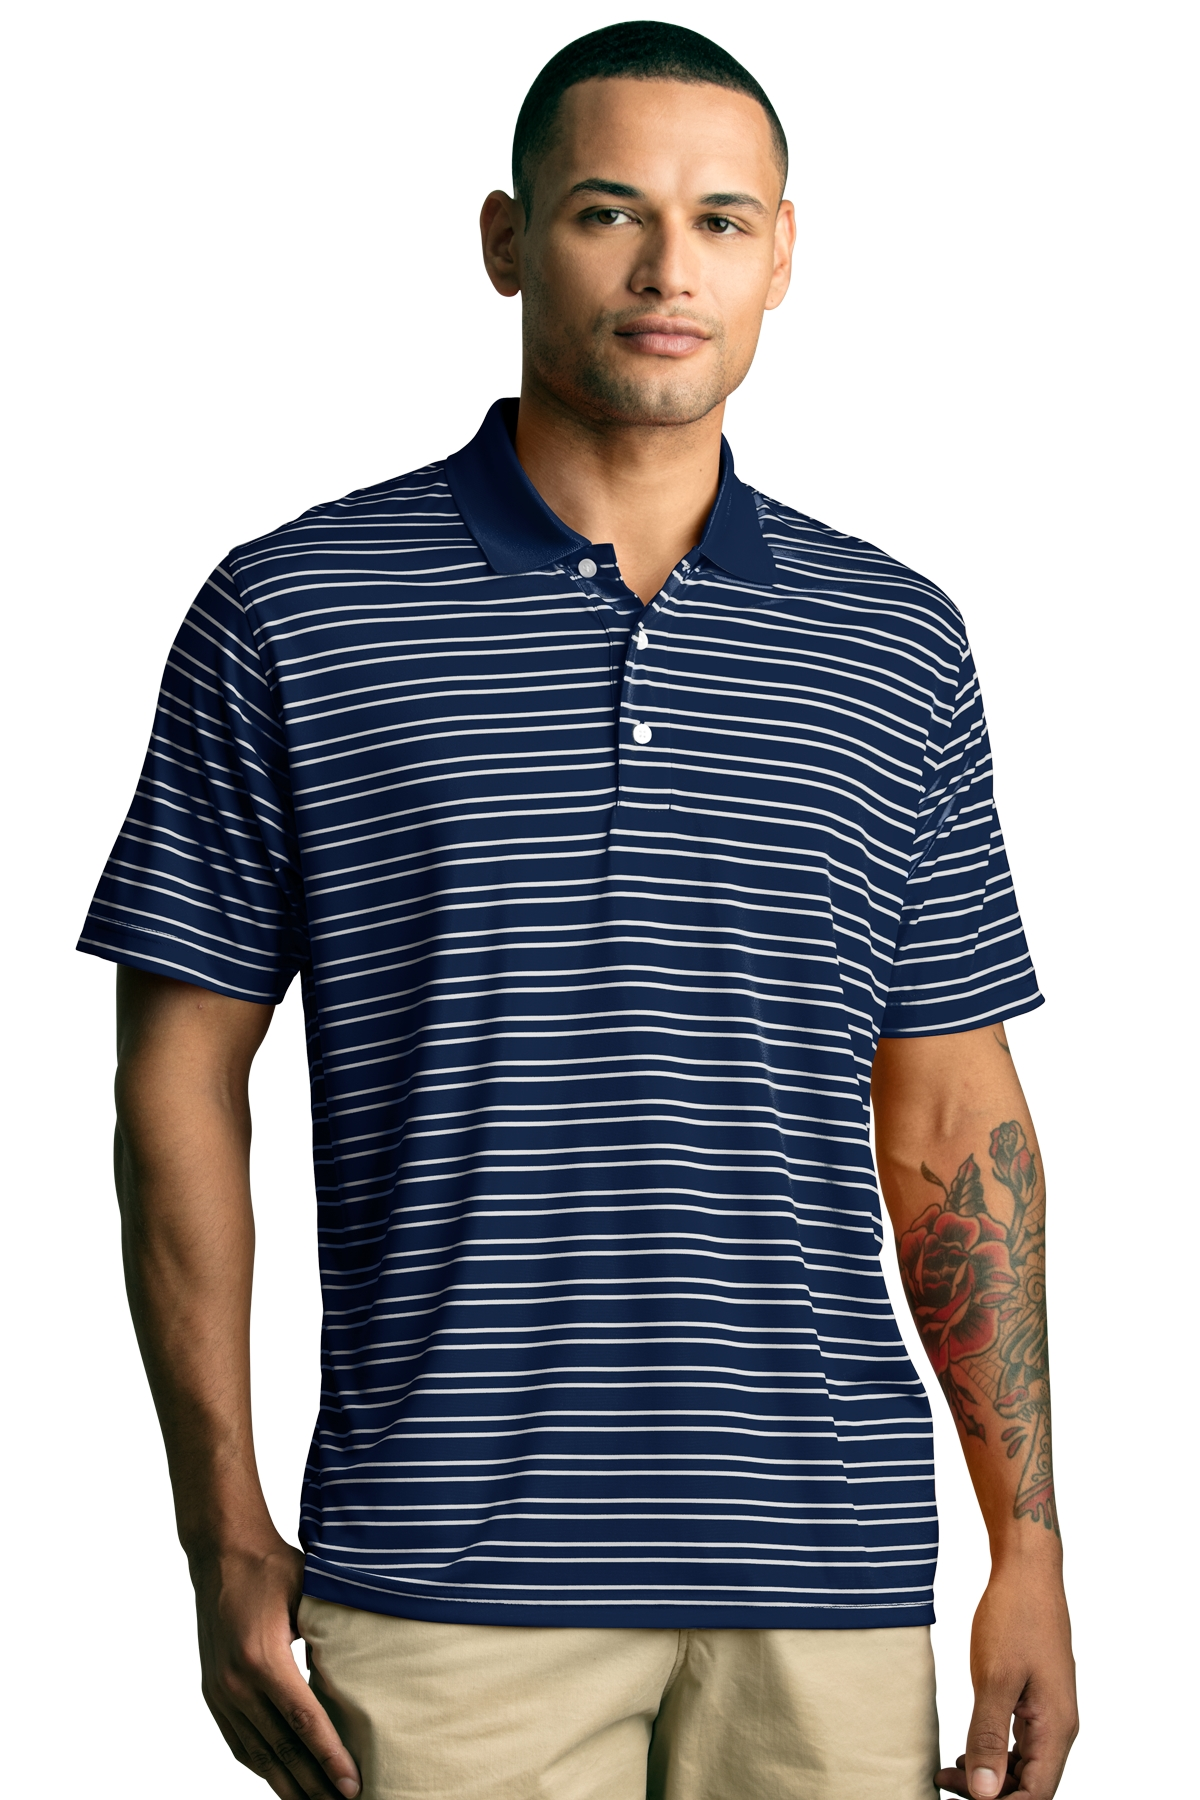 Vantage 2940 - Vansport™ Tour Stripe Polo